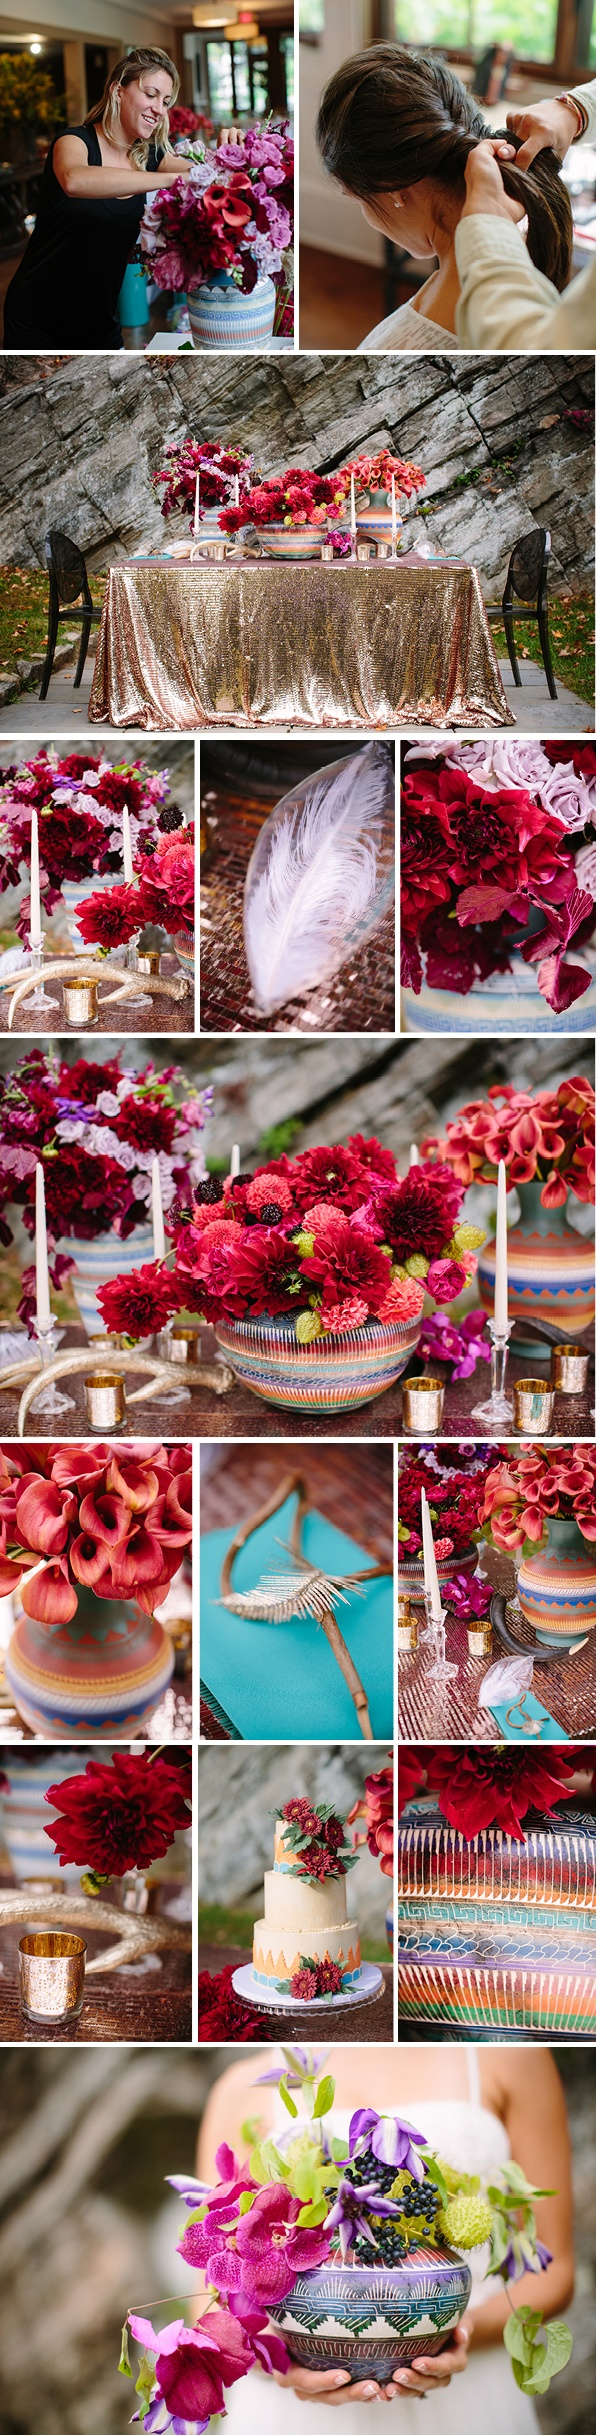 Southwestern Inspired Tabletop Design, Antlers, New Mexico, Vibrant Colors, Dahlia, Gold Sequin Linen